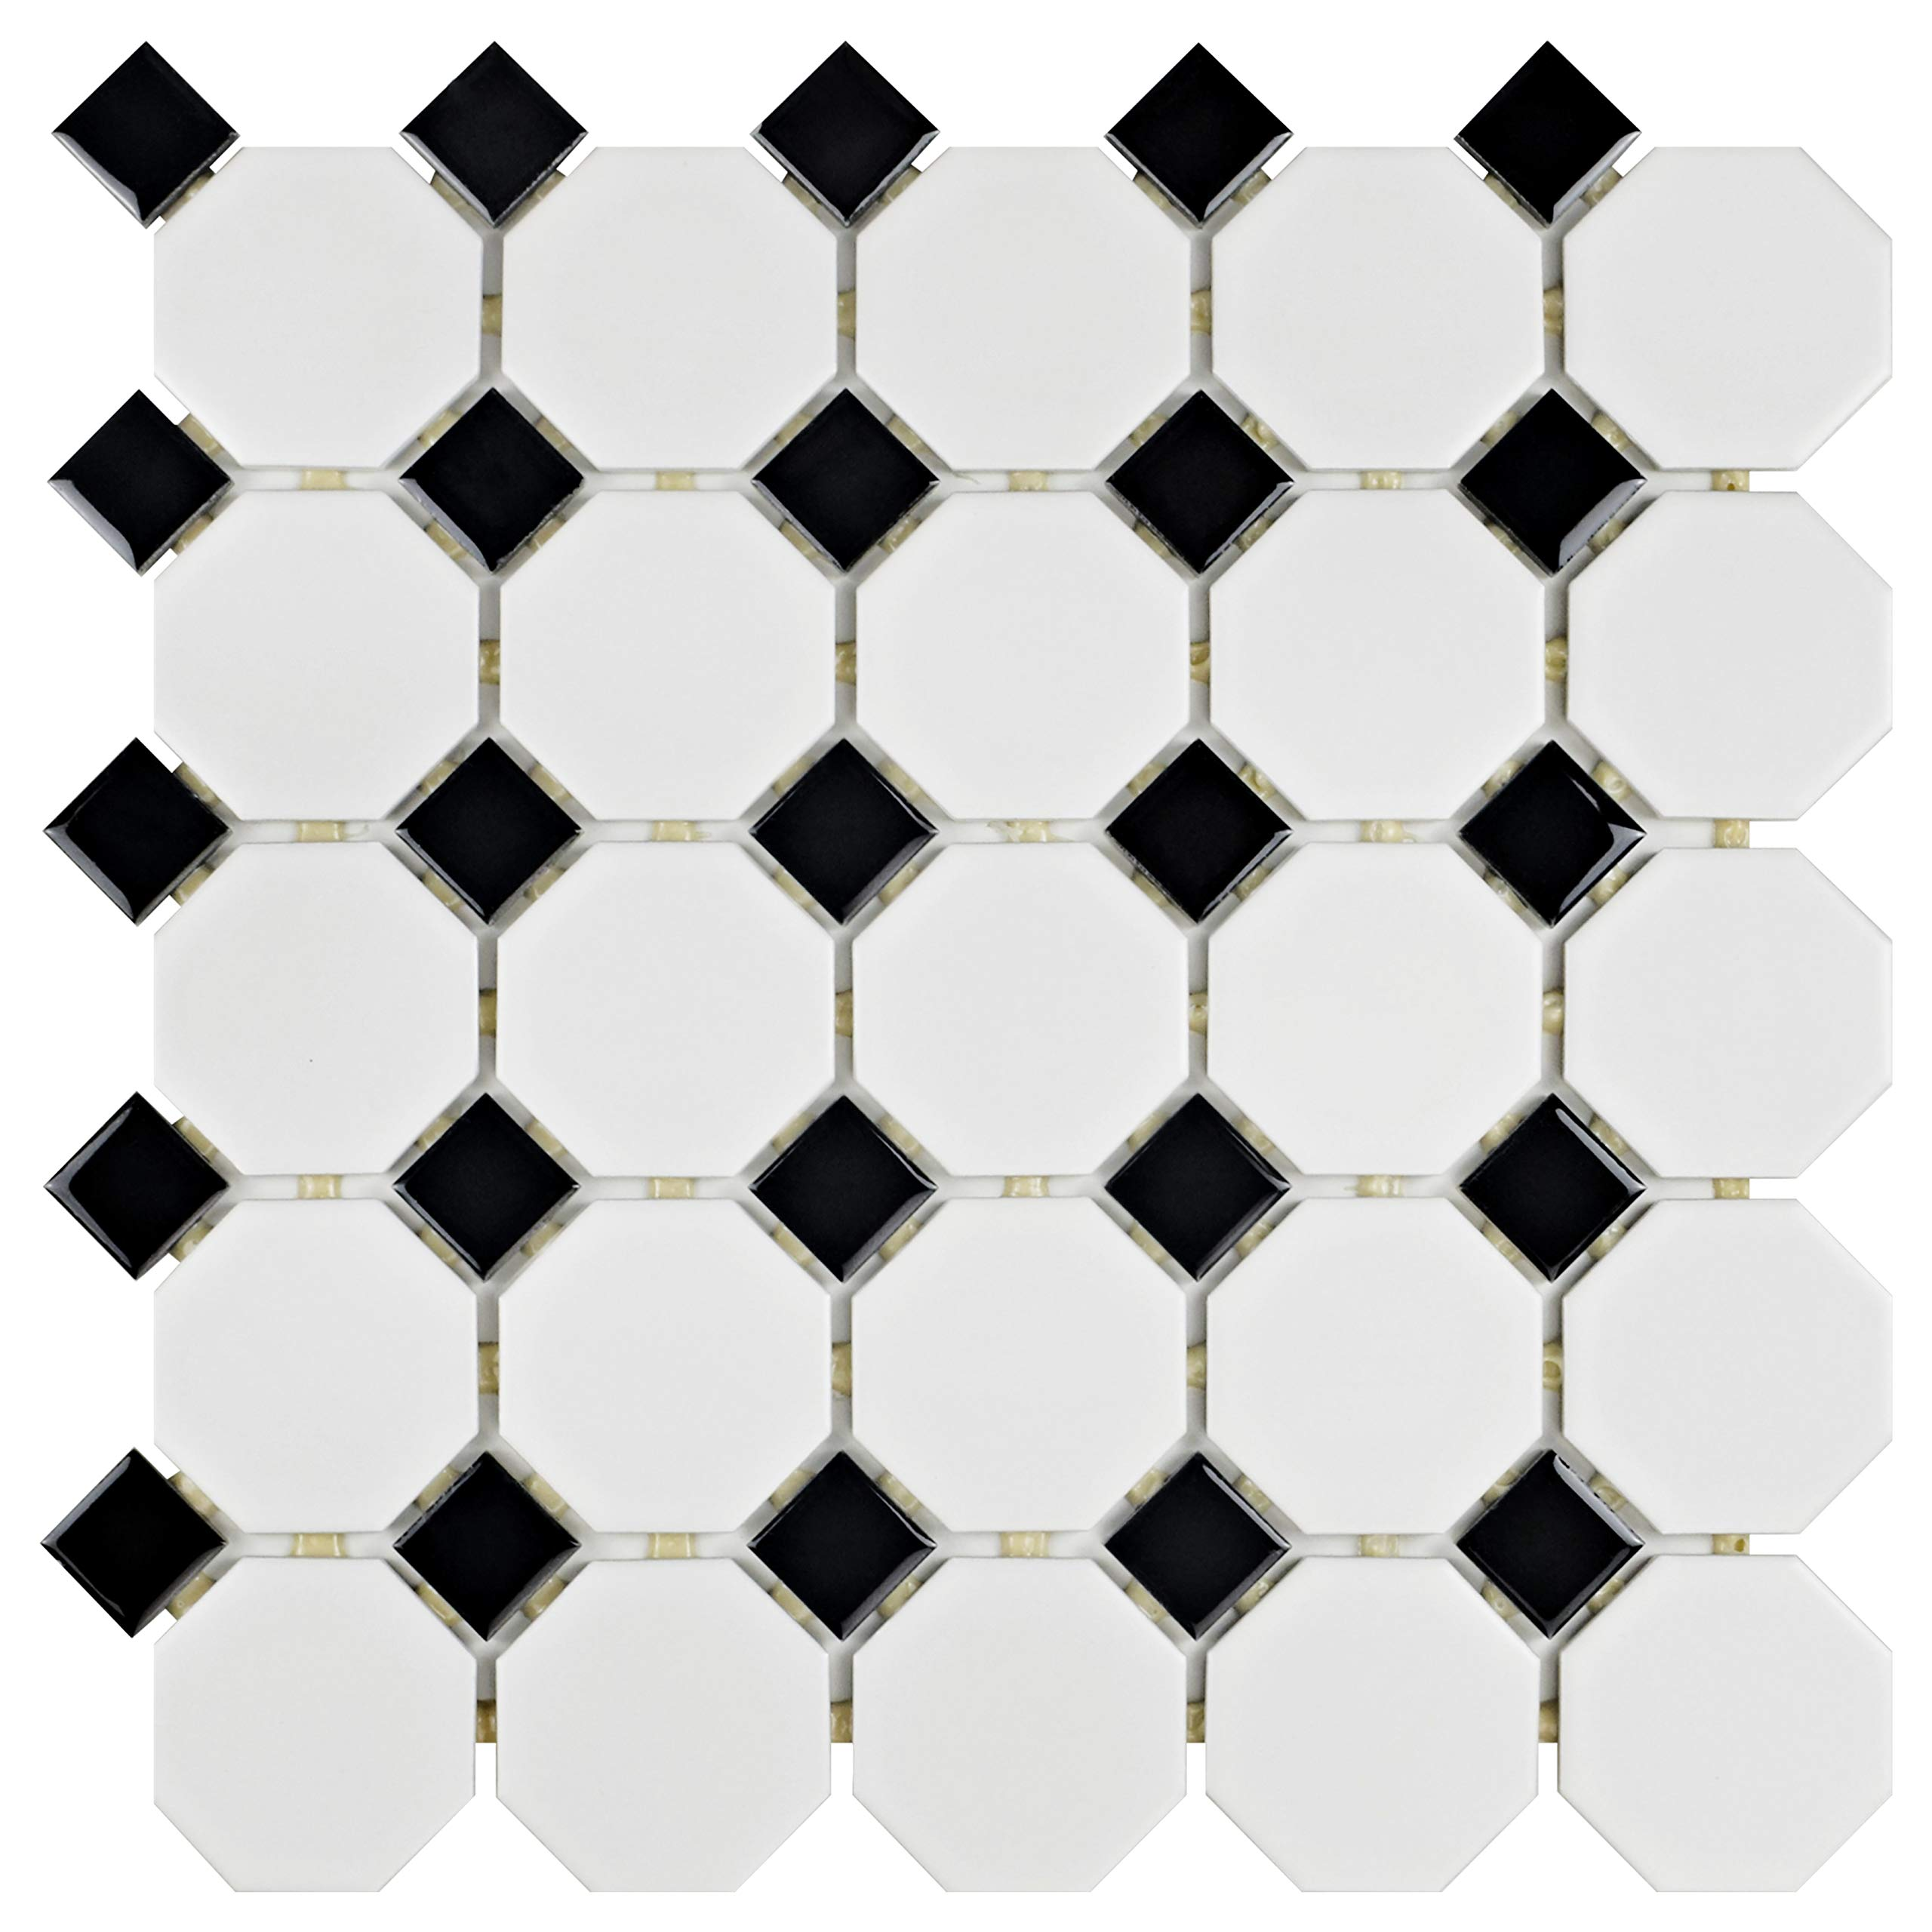 SomerTile FXLM2OWD Retro Octagon Porcelain Floor and Wall Tile, 11.5'' x 11.5'', Matte White with Glossy Black Dot